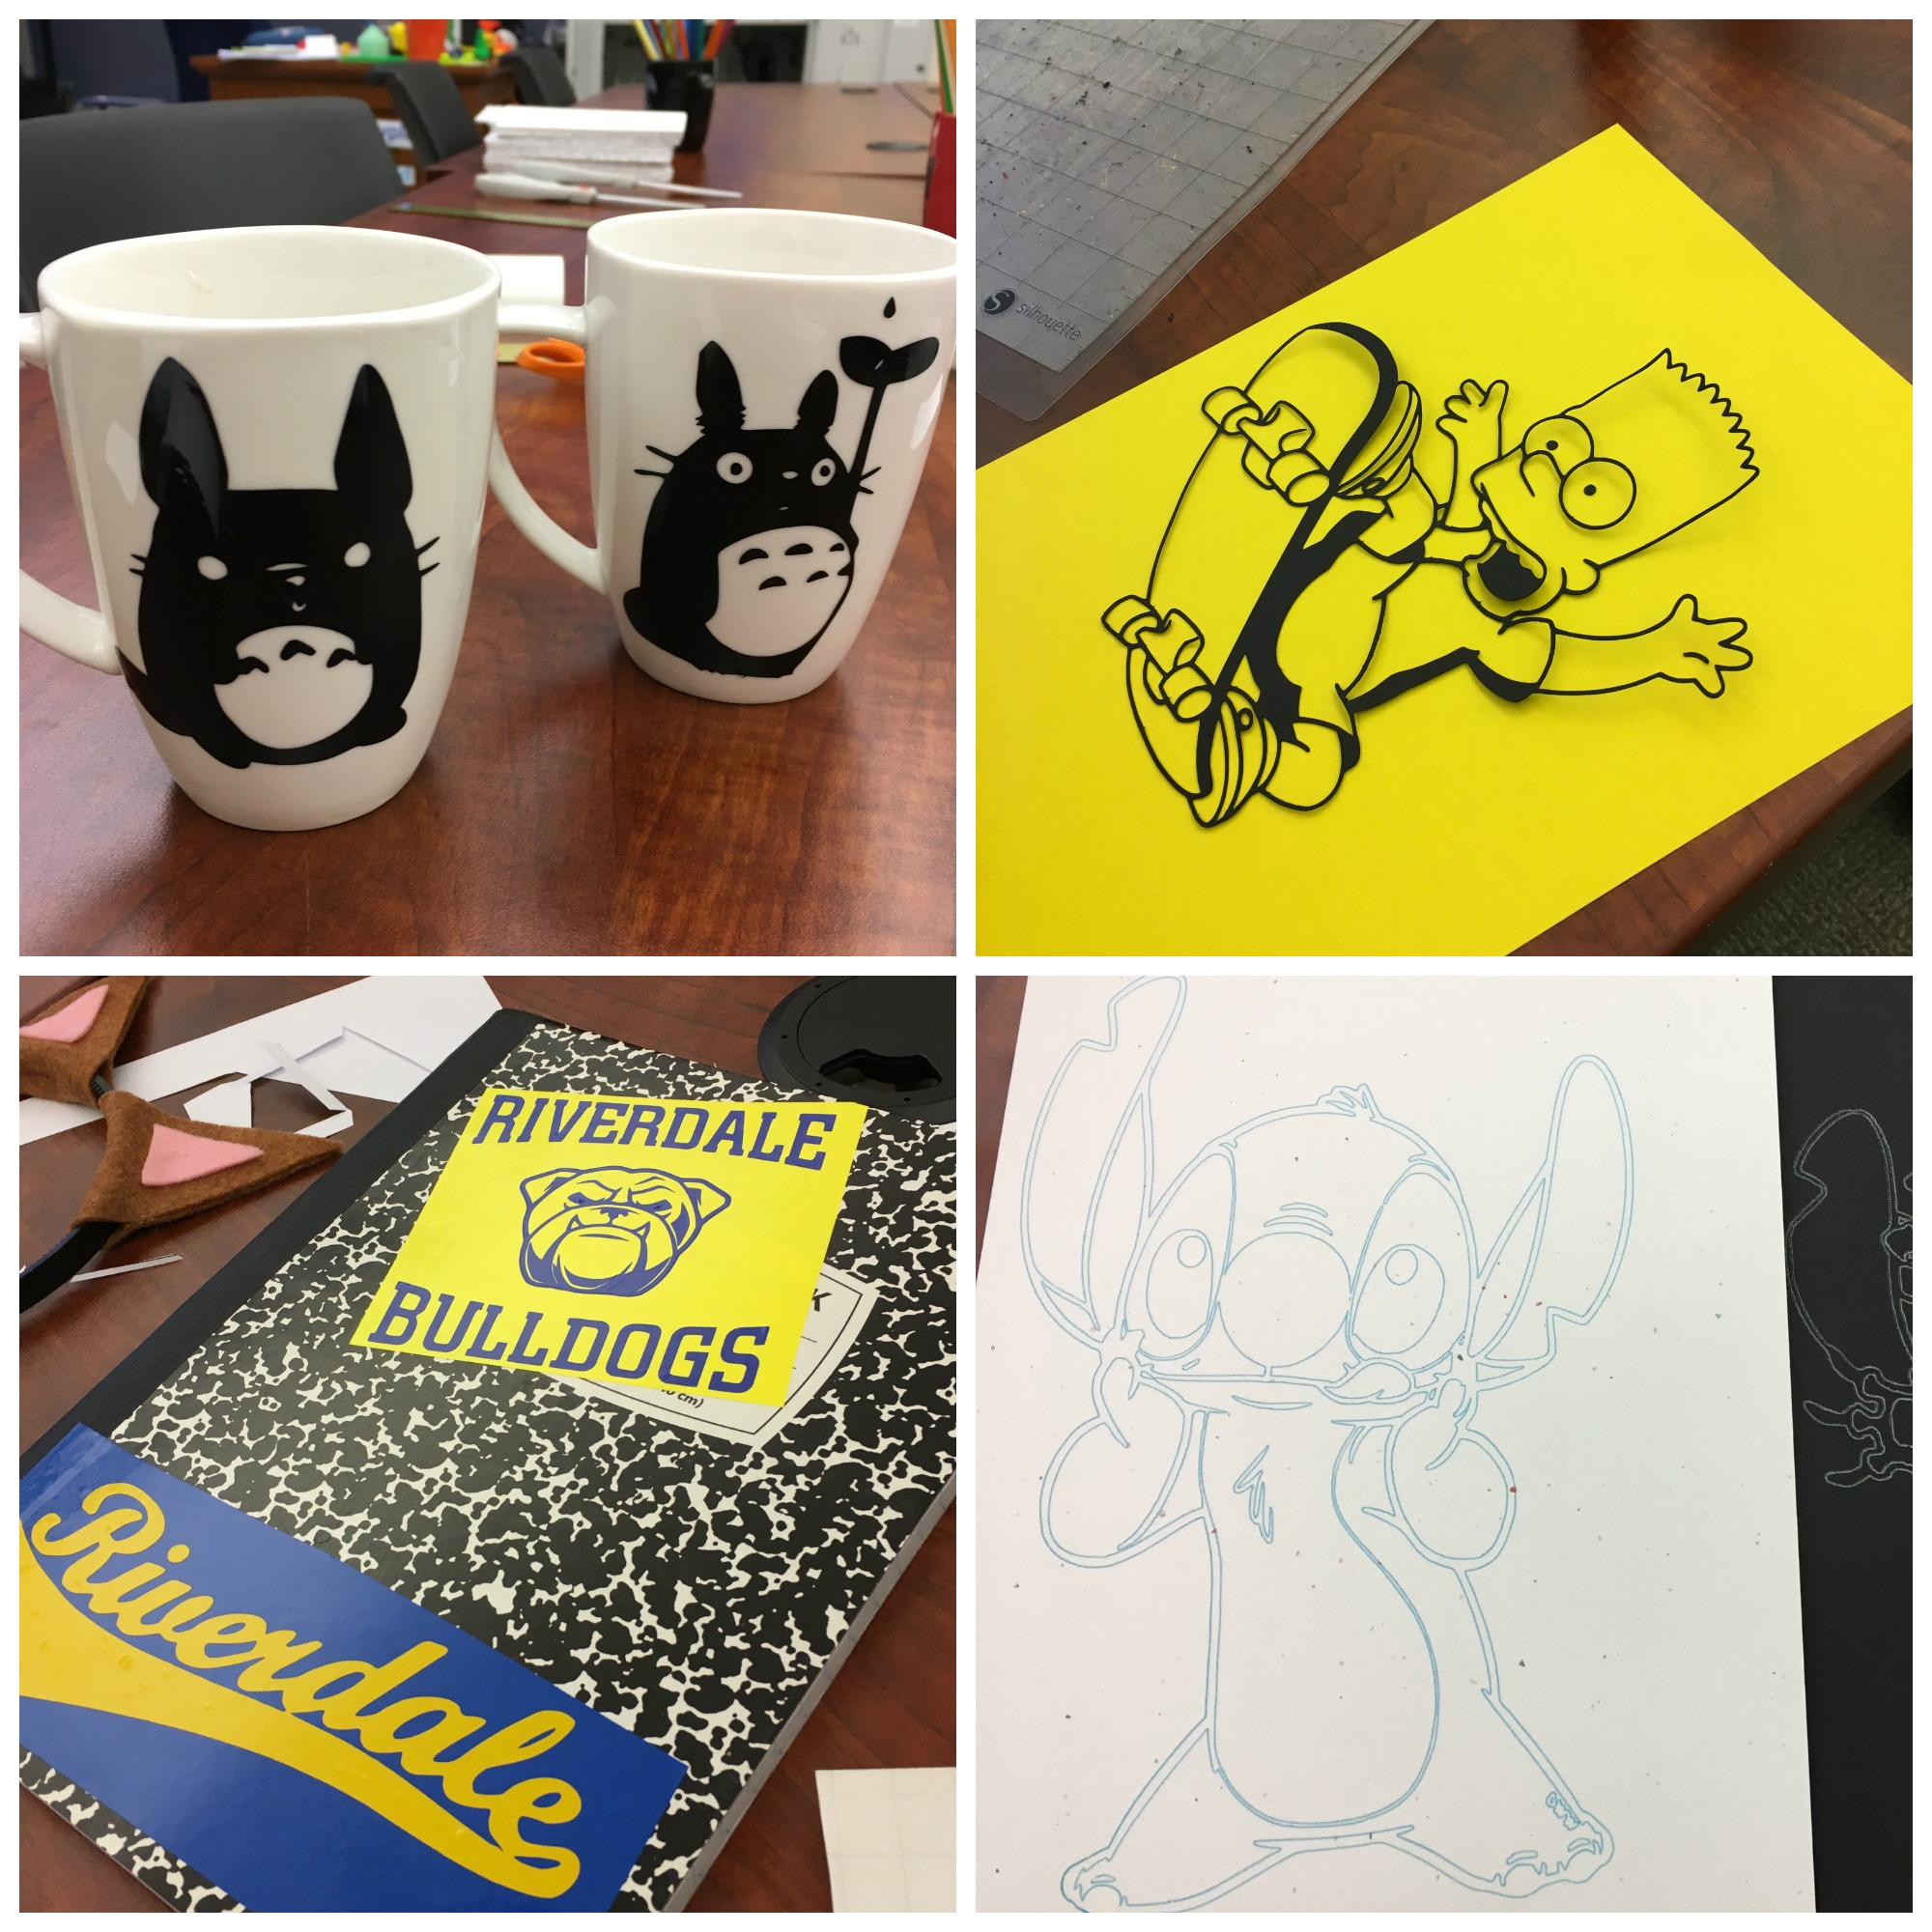 Mugs with Totoro vinyl decals, Bart Simpson cut from cardstock, Stitch drawn with sketch pen, Riverdale decals on a notebook